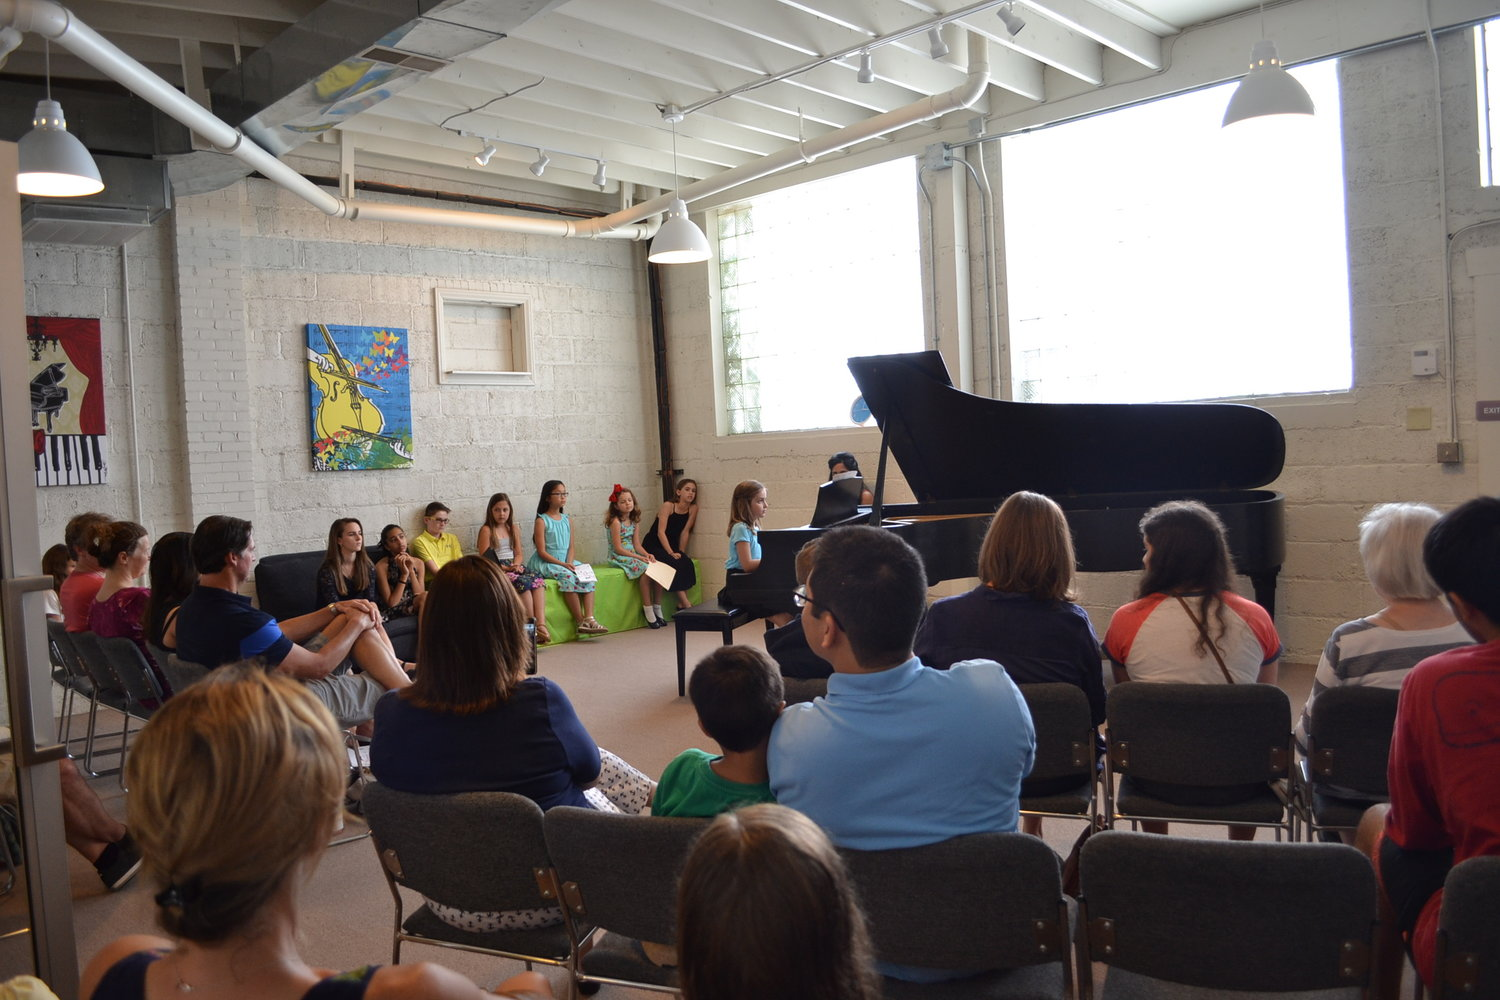 Ms. Simmi's Community Concert held in Sewickley